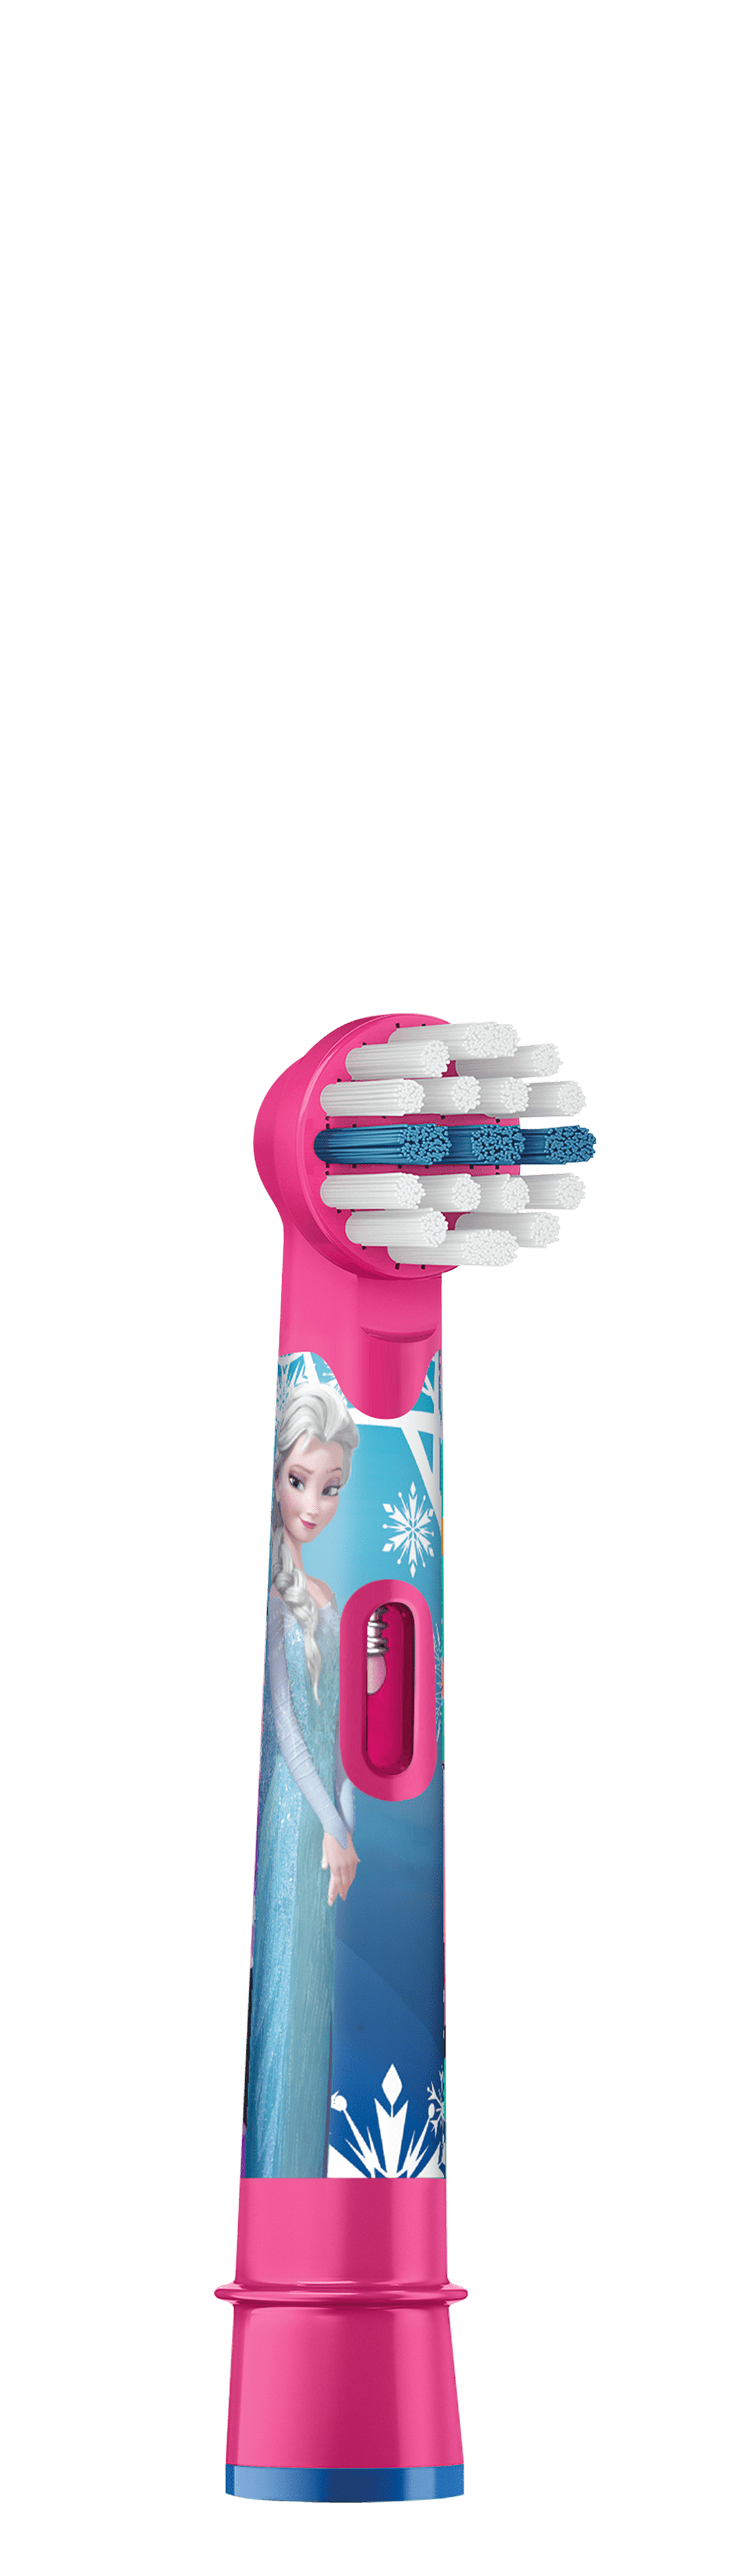 Oral-B Stages Power Reine des Neiges brossettes enfants